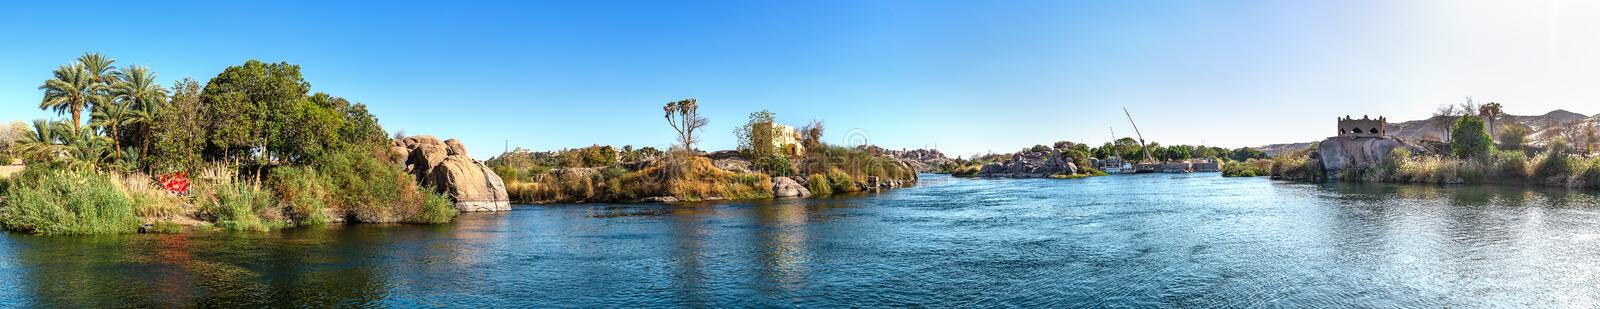 River Nile in Aswan stock photography